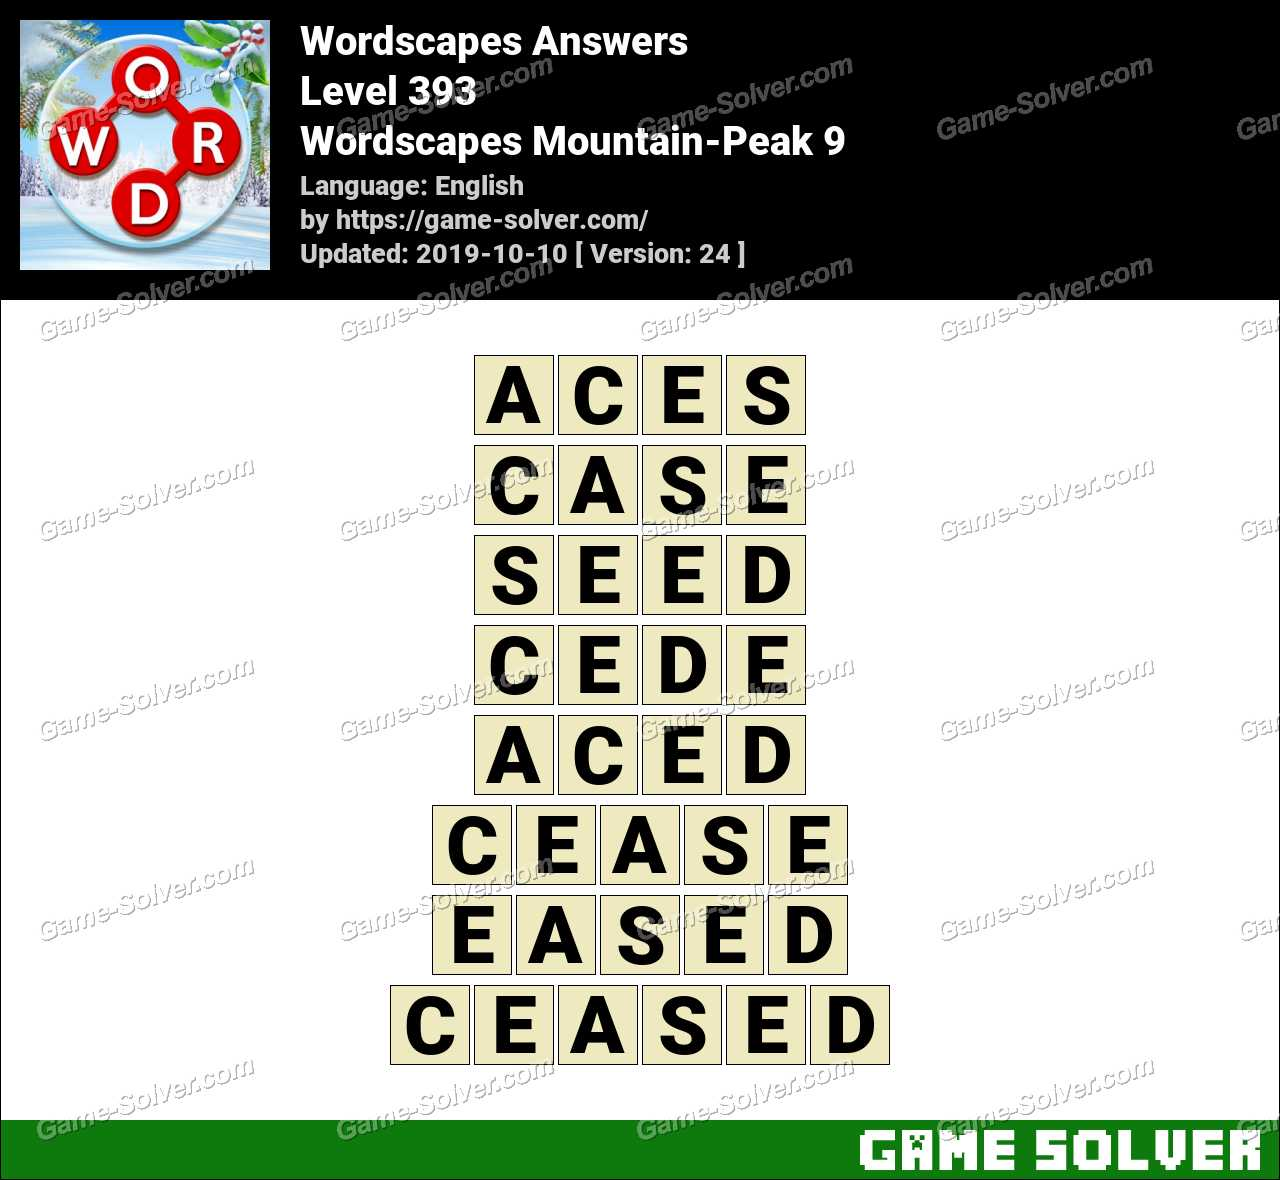 Wordscapes Mountain-Peak 9 Answers